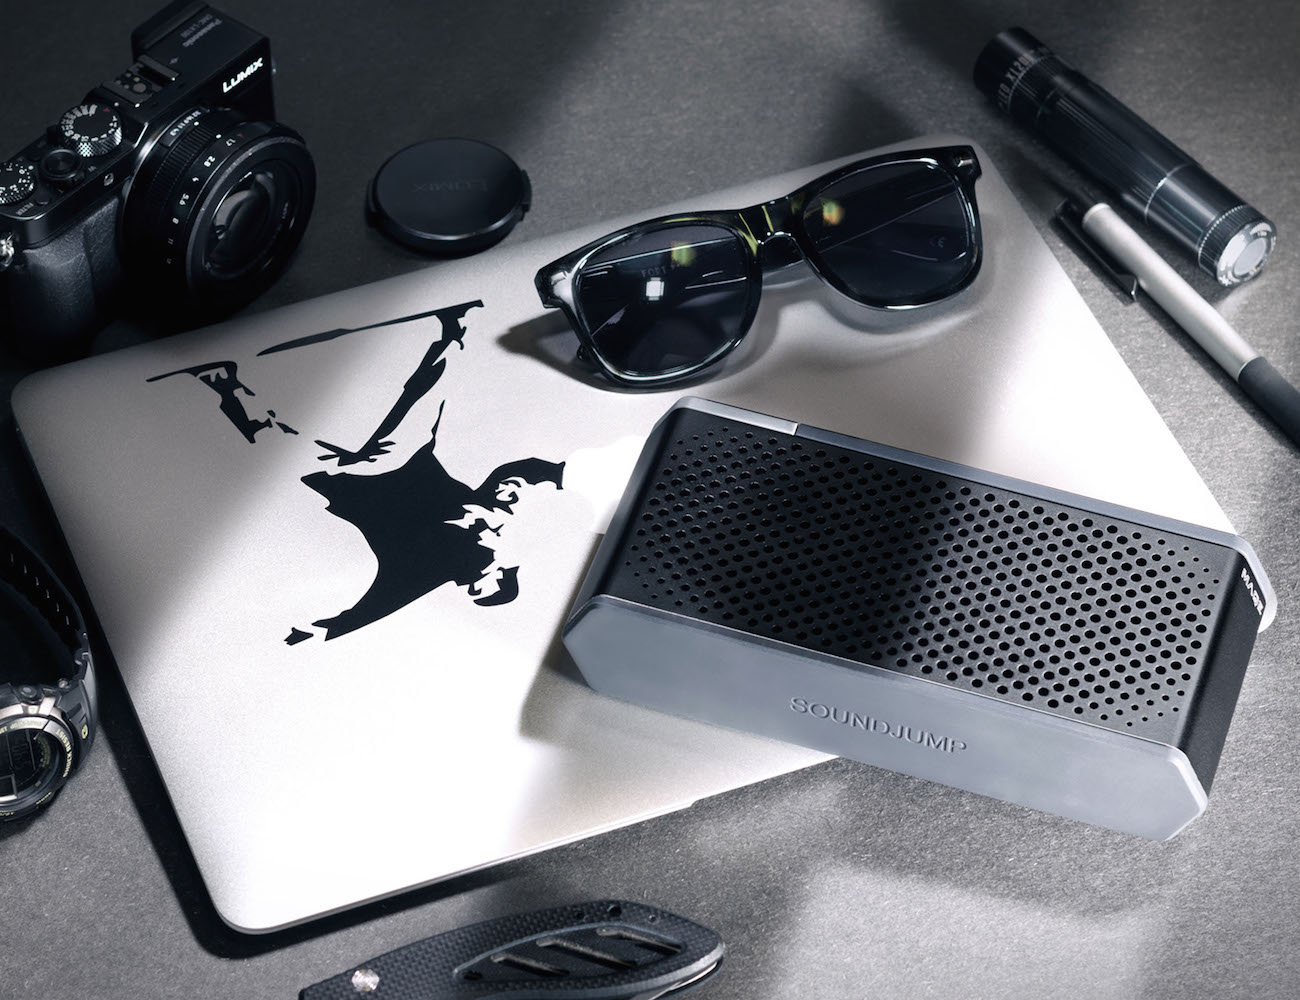 Soundjump Wireless Speaker W/Magnetic Power Bank